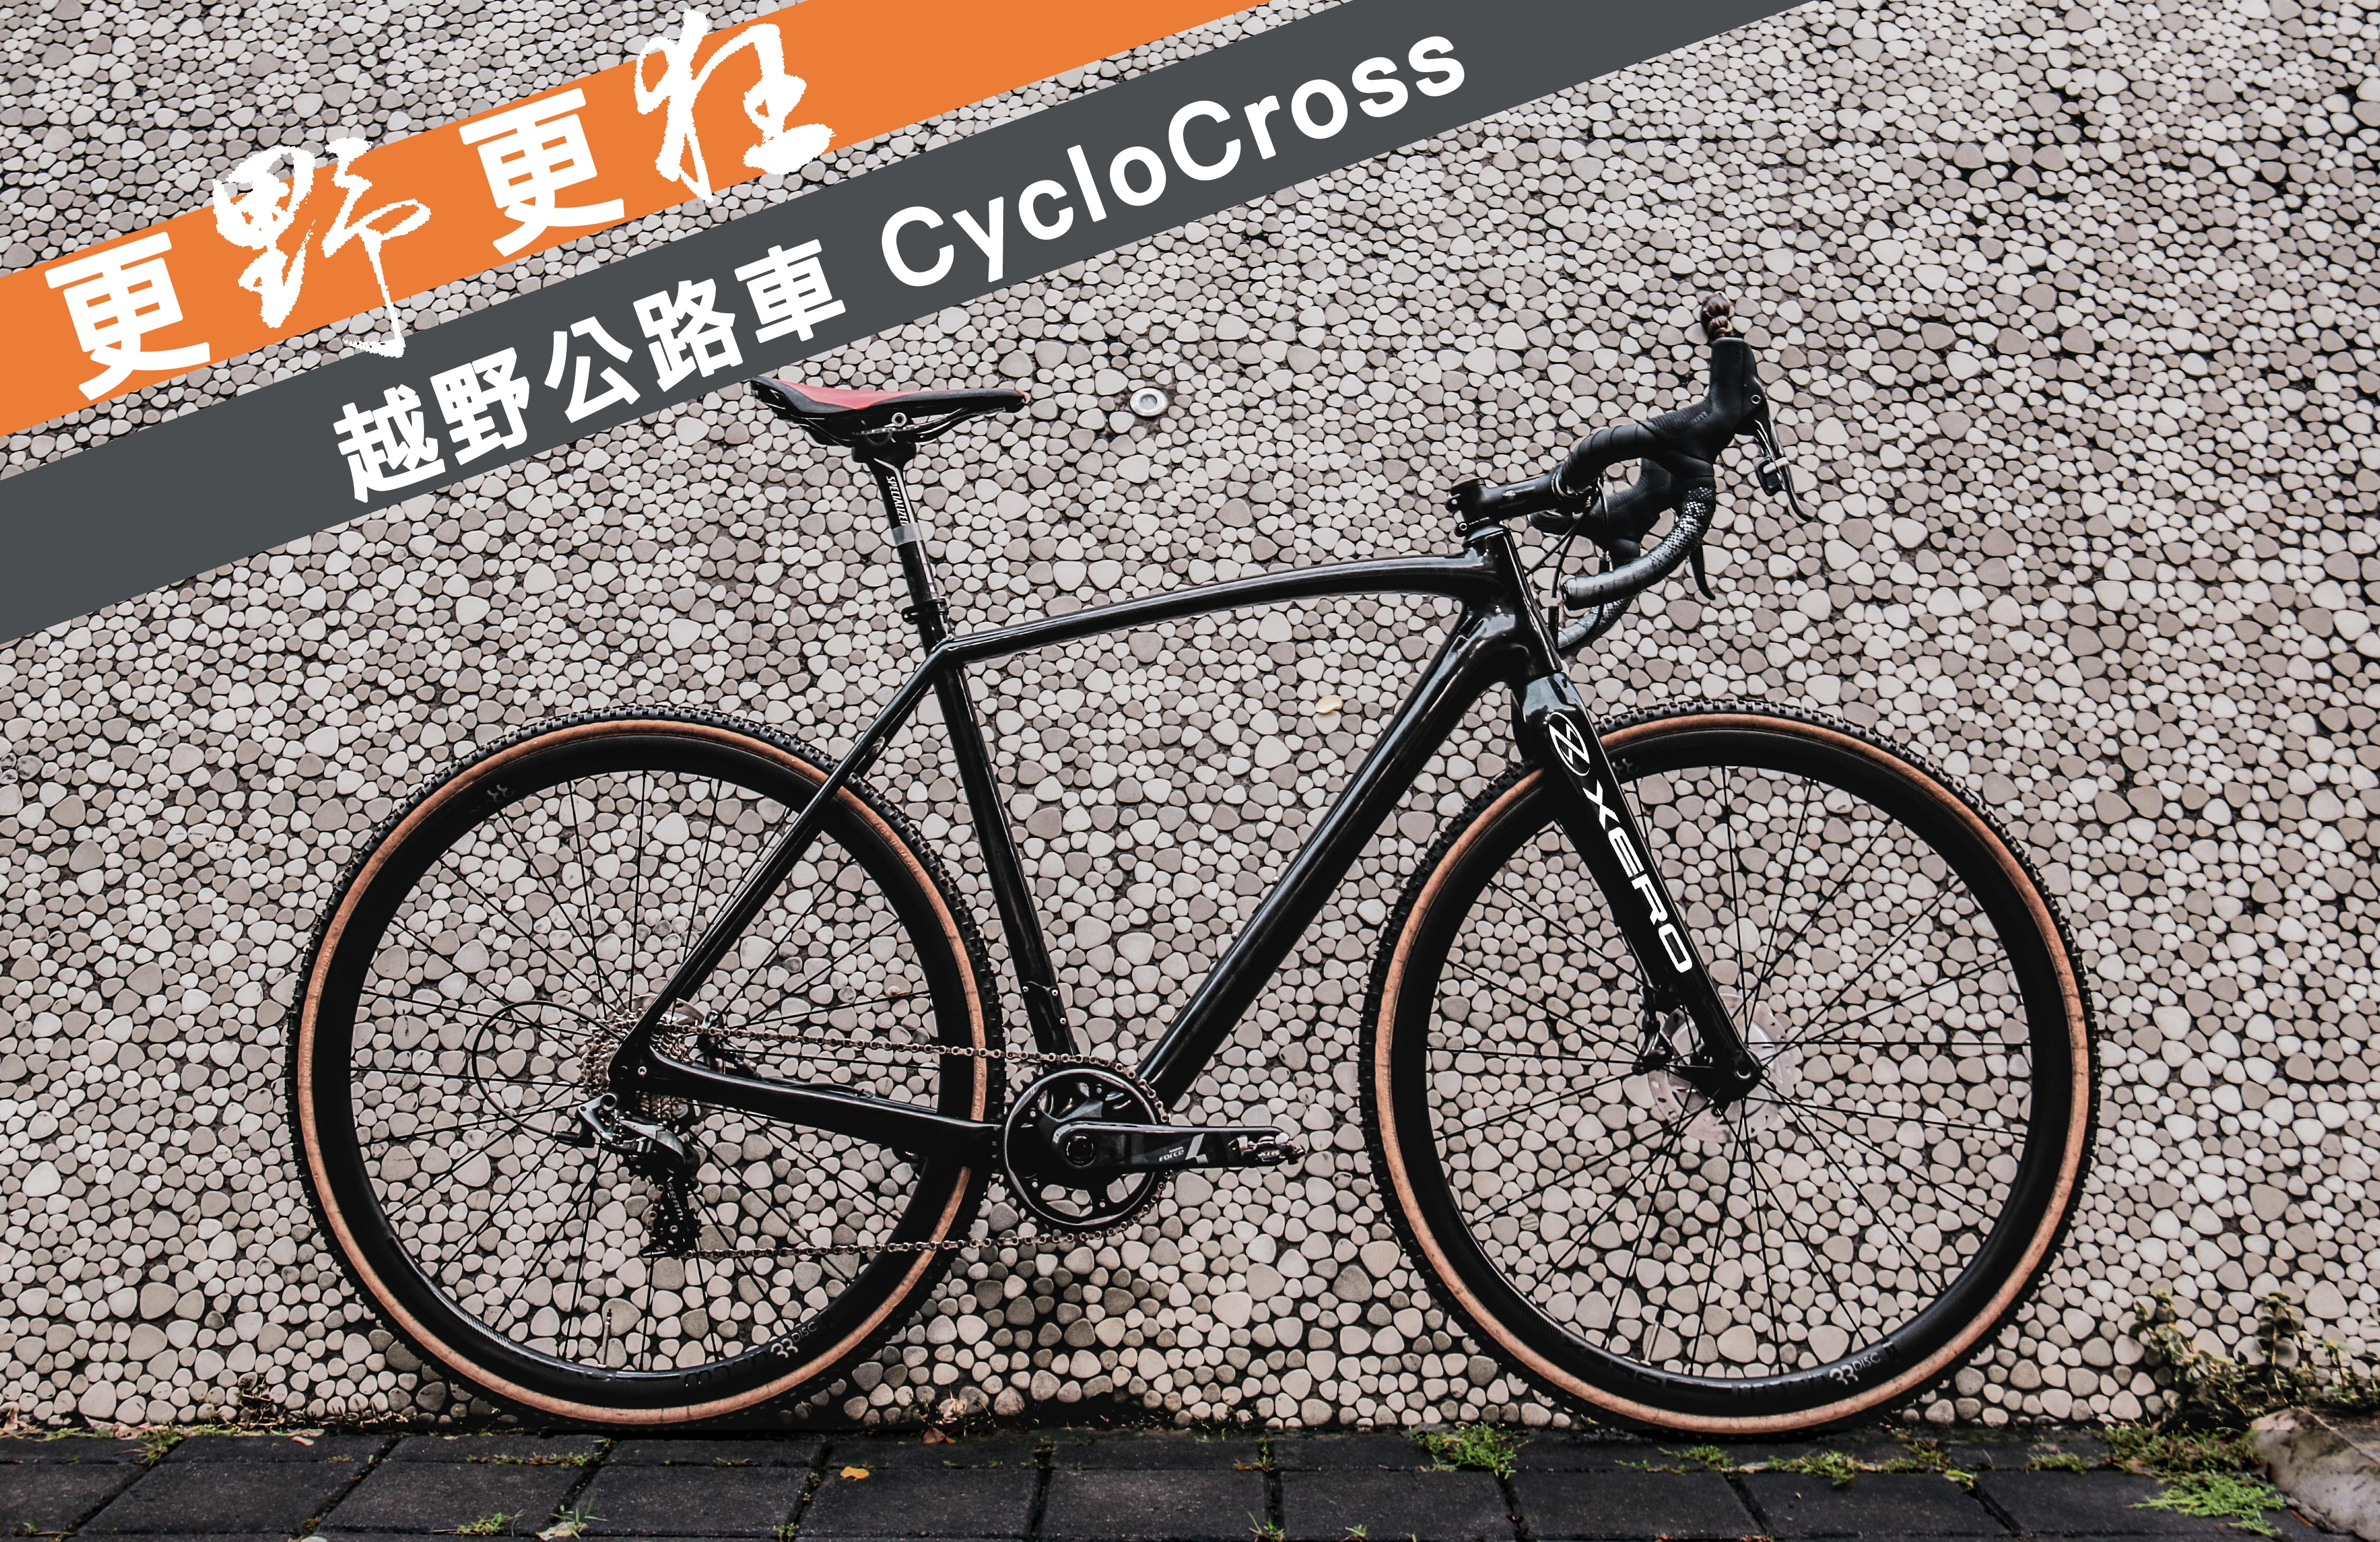 DISC系列 Chapter 2 - 更野!更狂!越野公路車 CycloCross